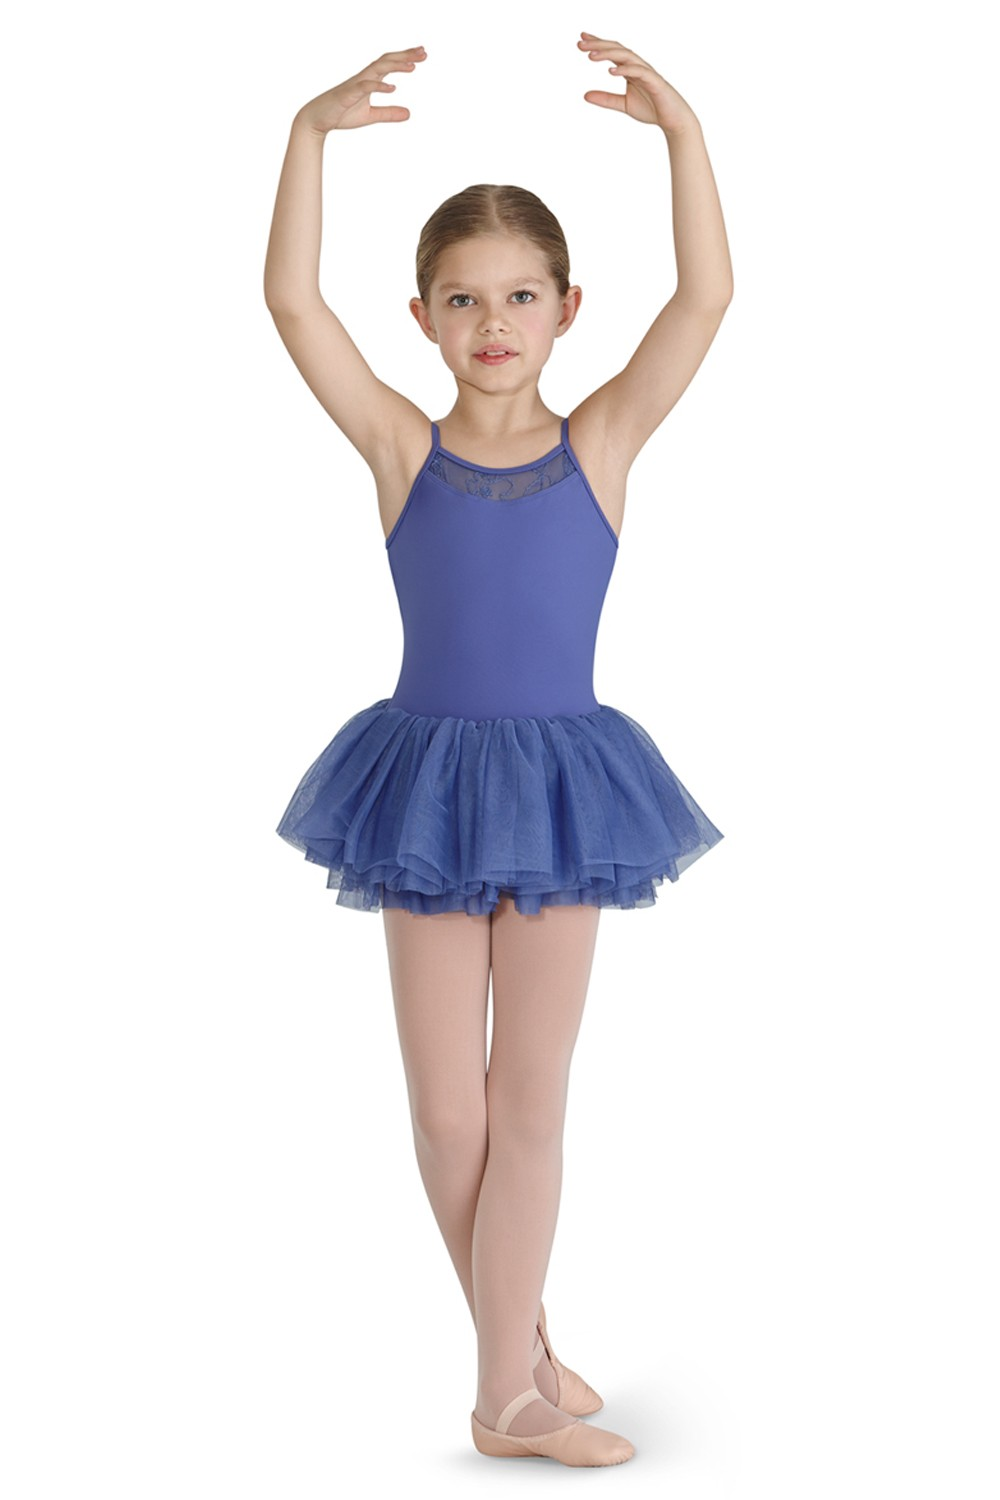 Camisole Tutu Dress Children's Dance Leotards